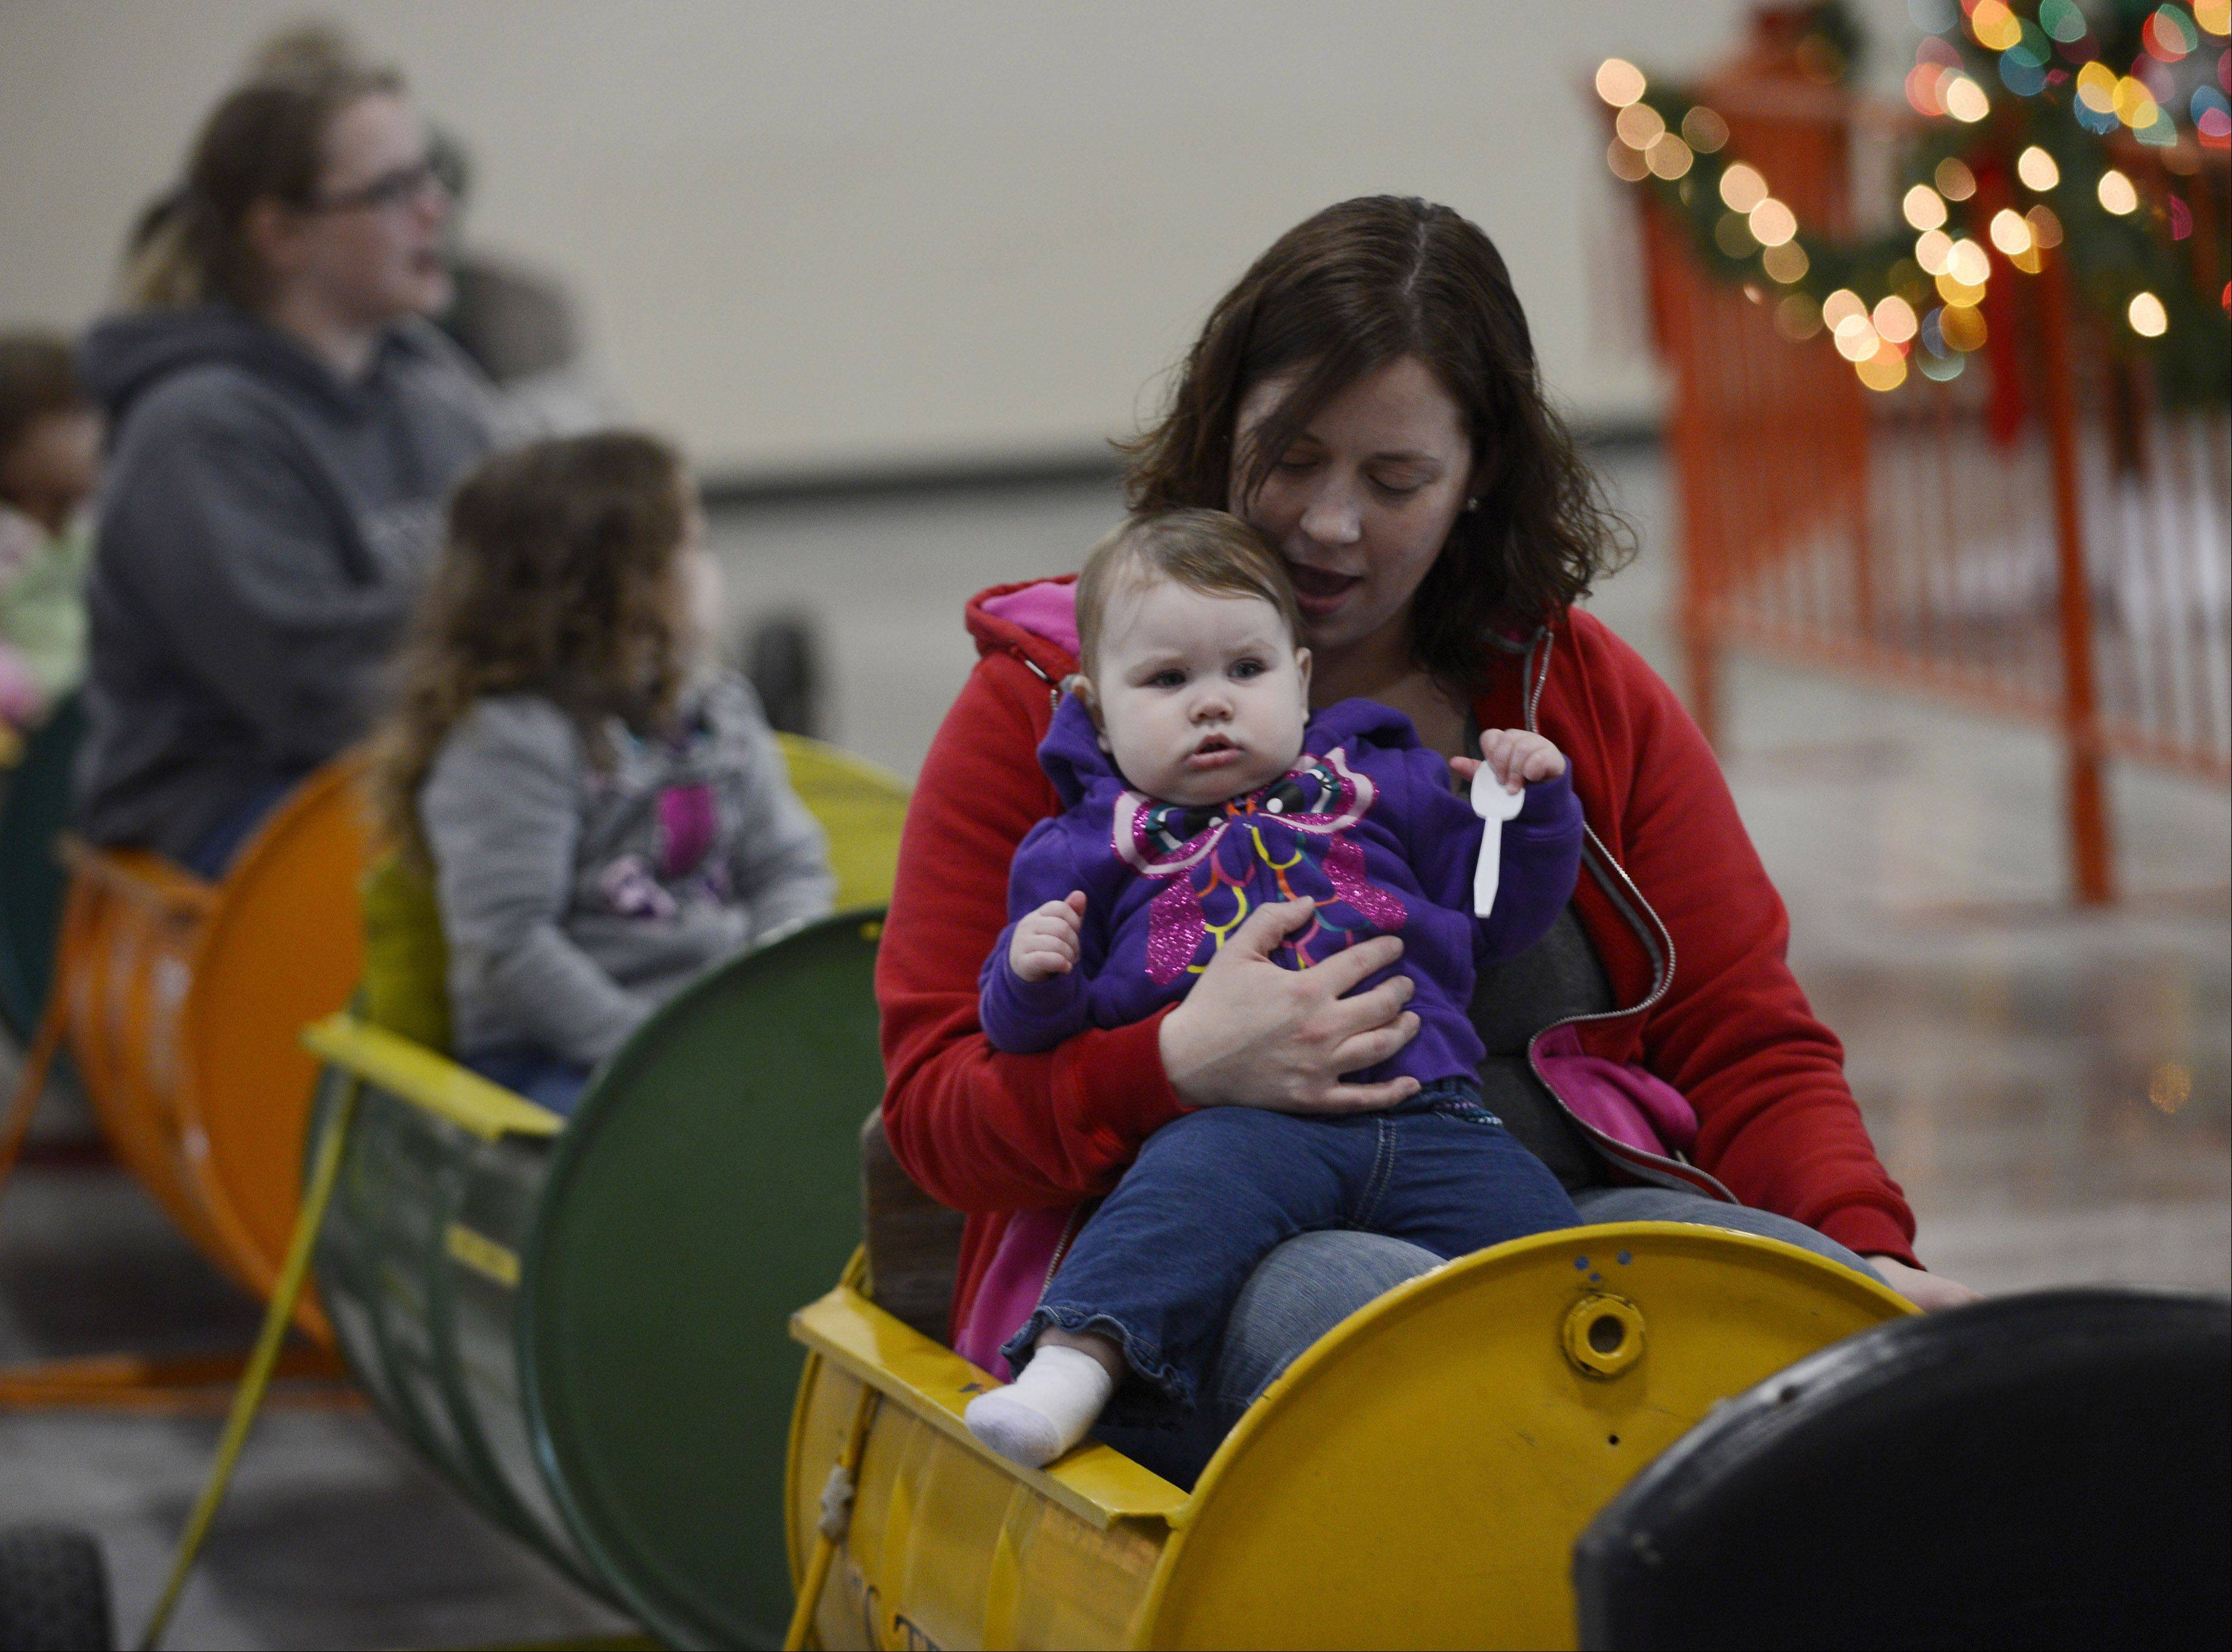 Avri Beck, age 10 months, of Round Lake Beach, rides the barrel train with her mom Rebekah during the Holiday Hoedown at the Lake County Fairgrounds Saturday. The event continues today.